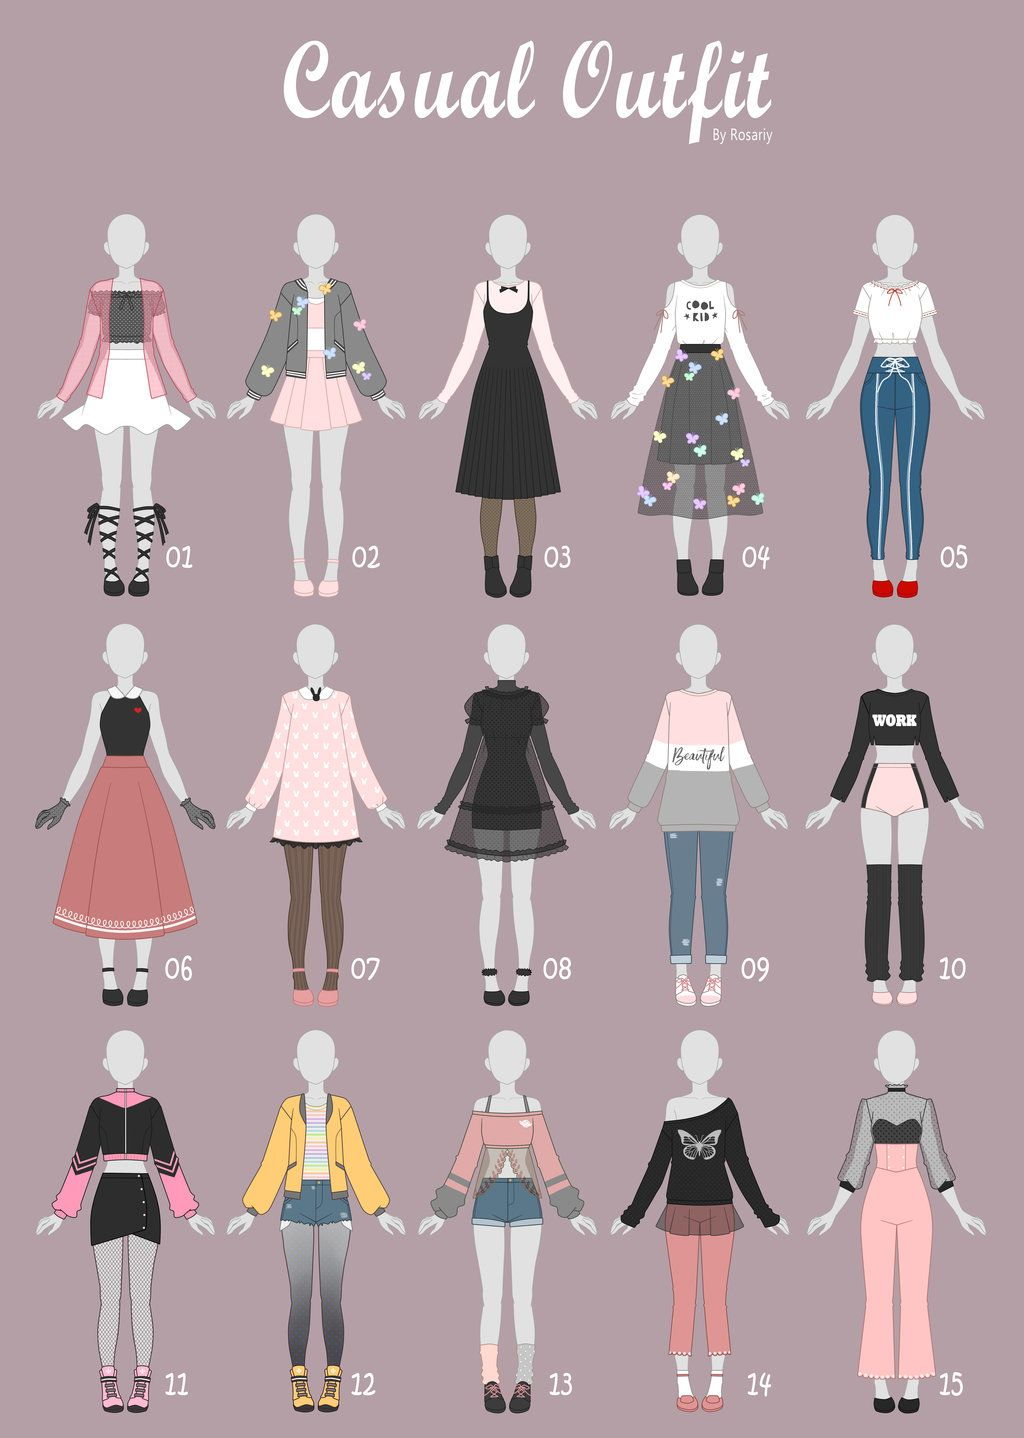 Open 5 15 Casual Outfit Adopts 34 By Rosariy